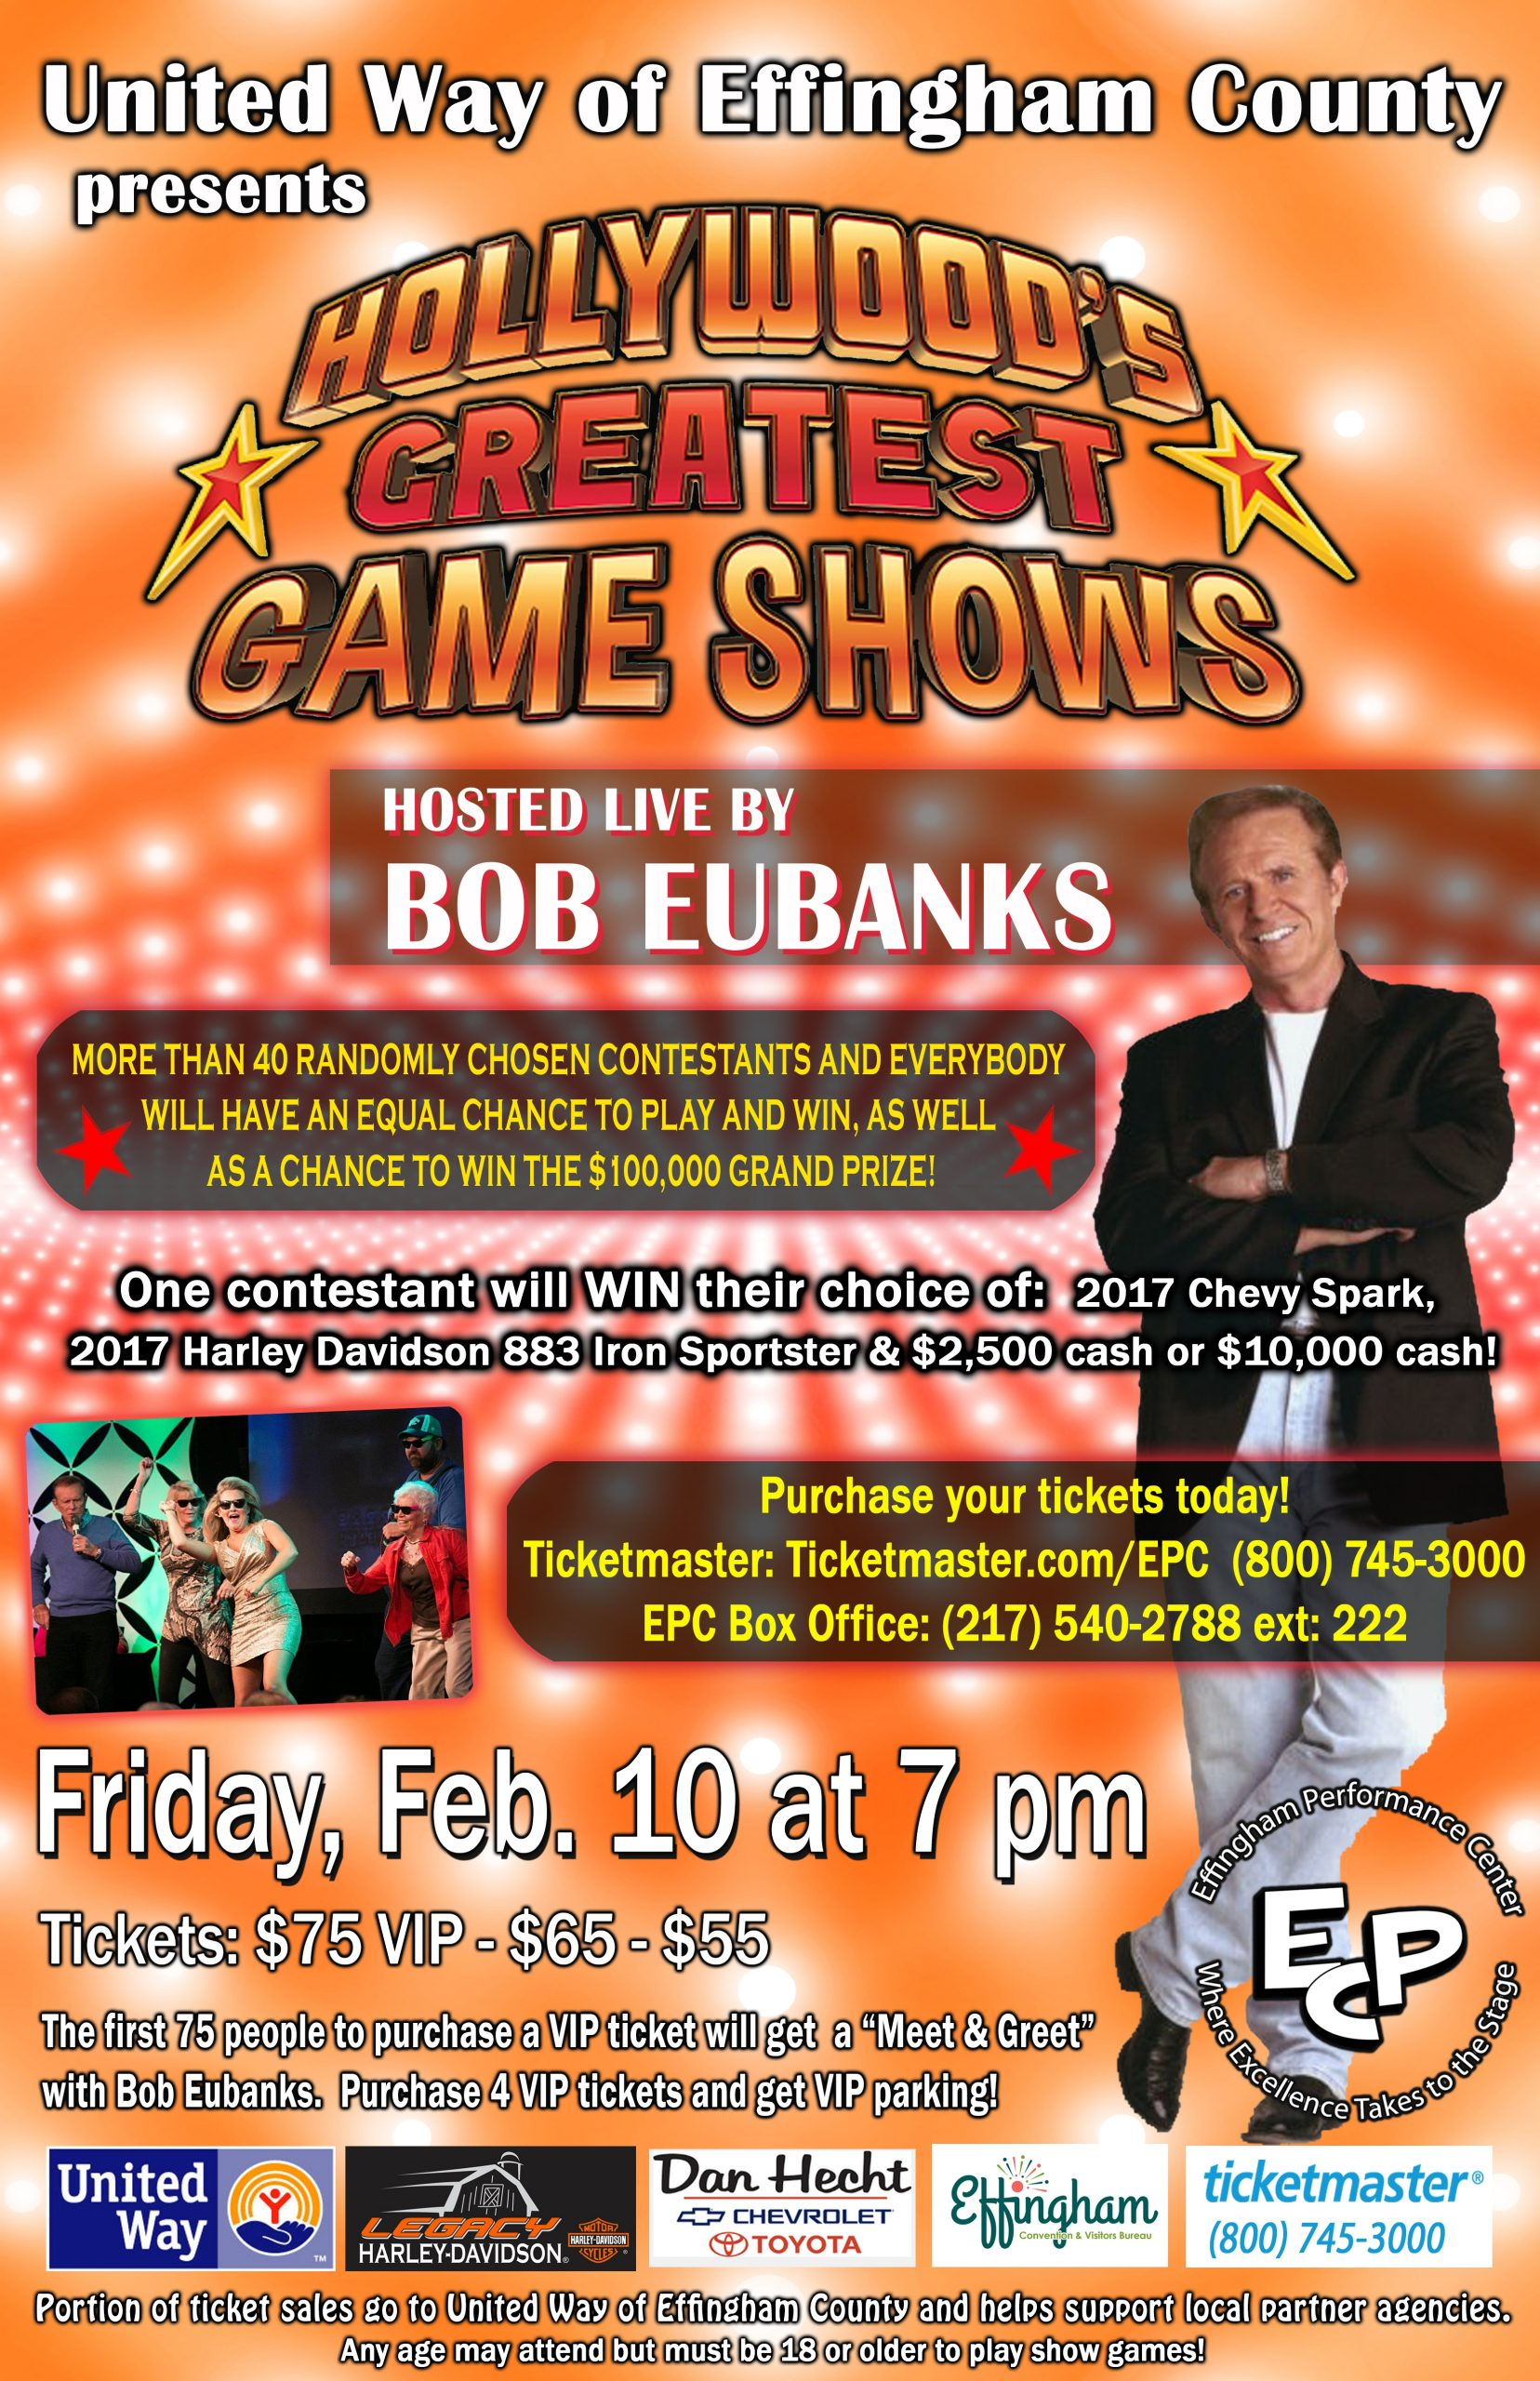 Hollywood's Greatest Game Shows in Effingham